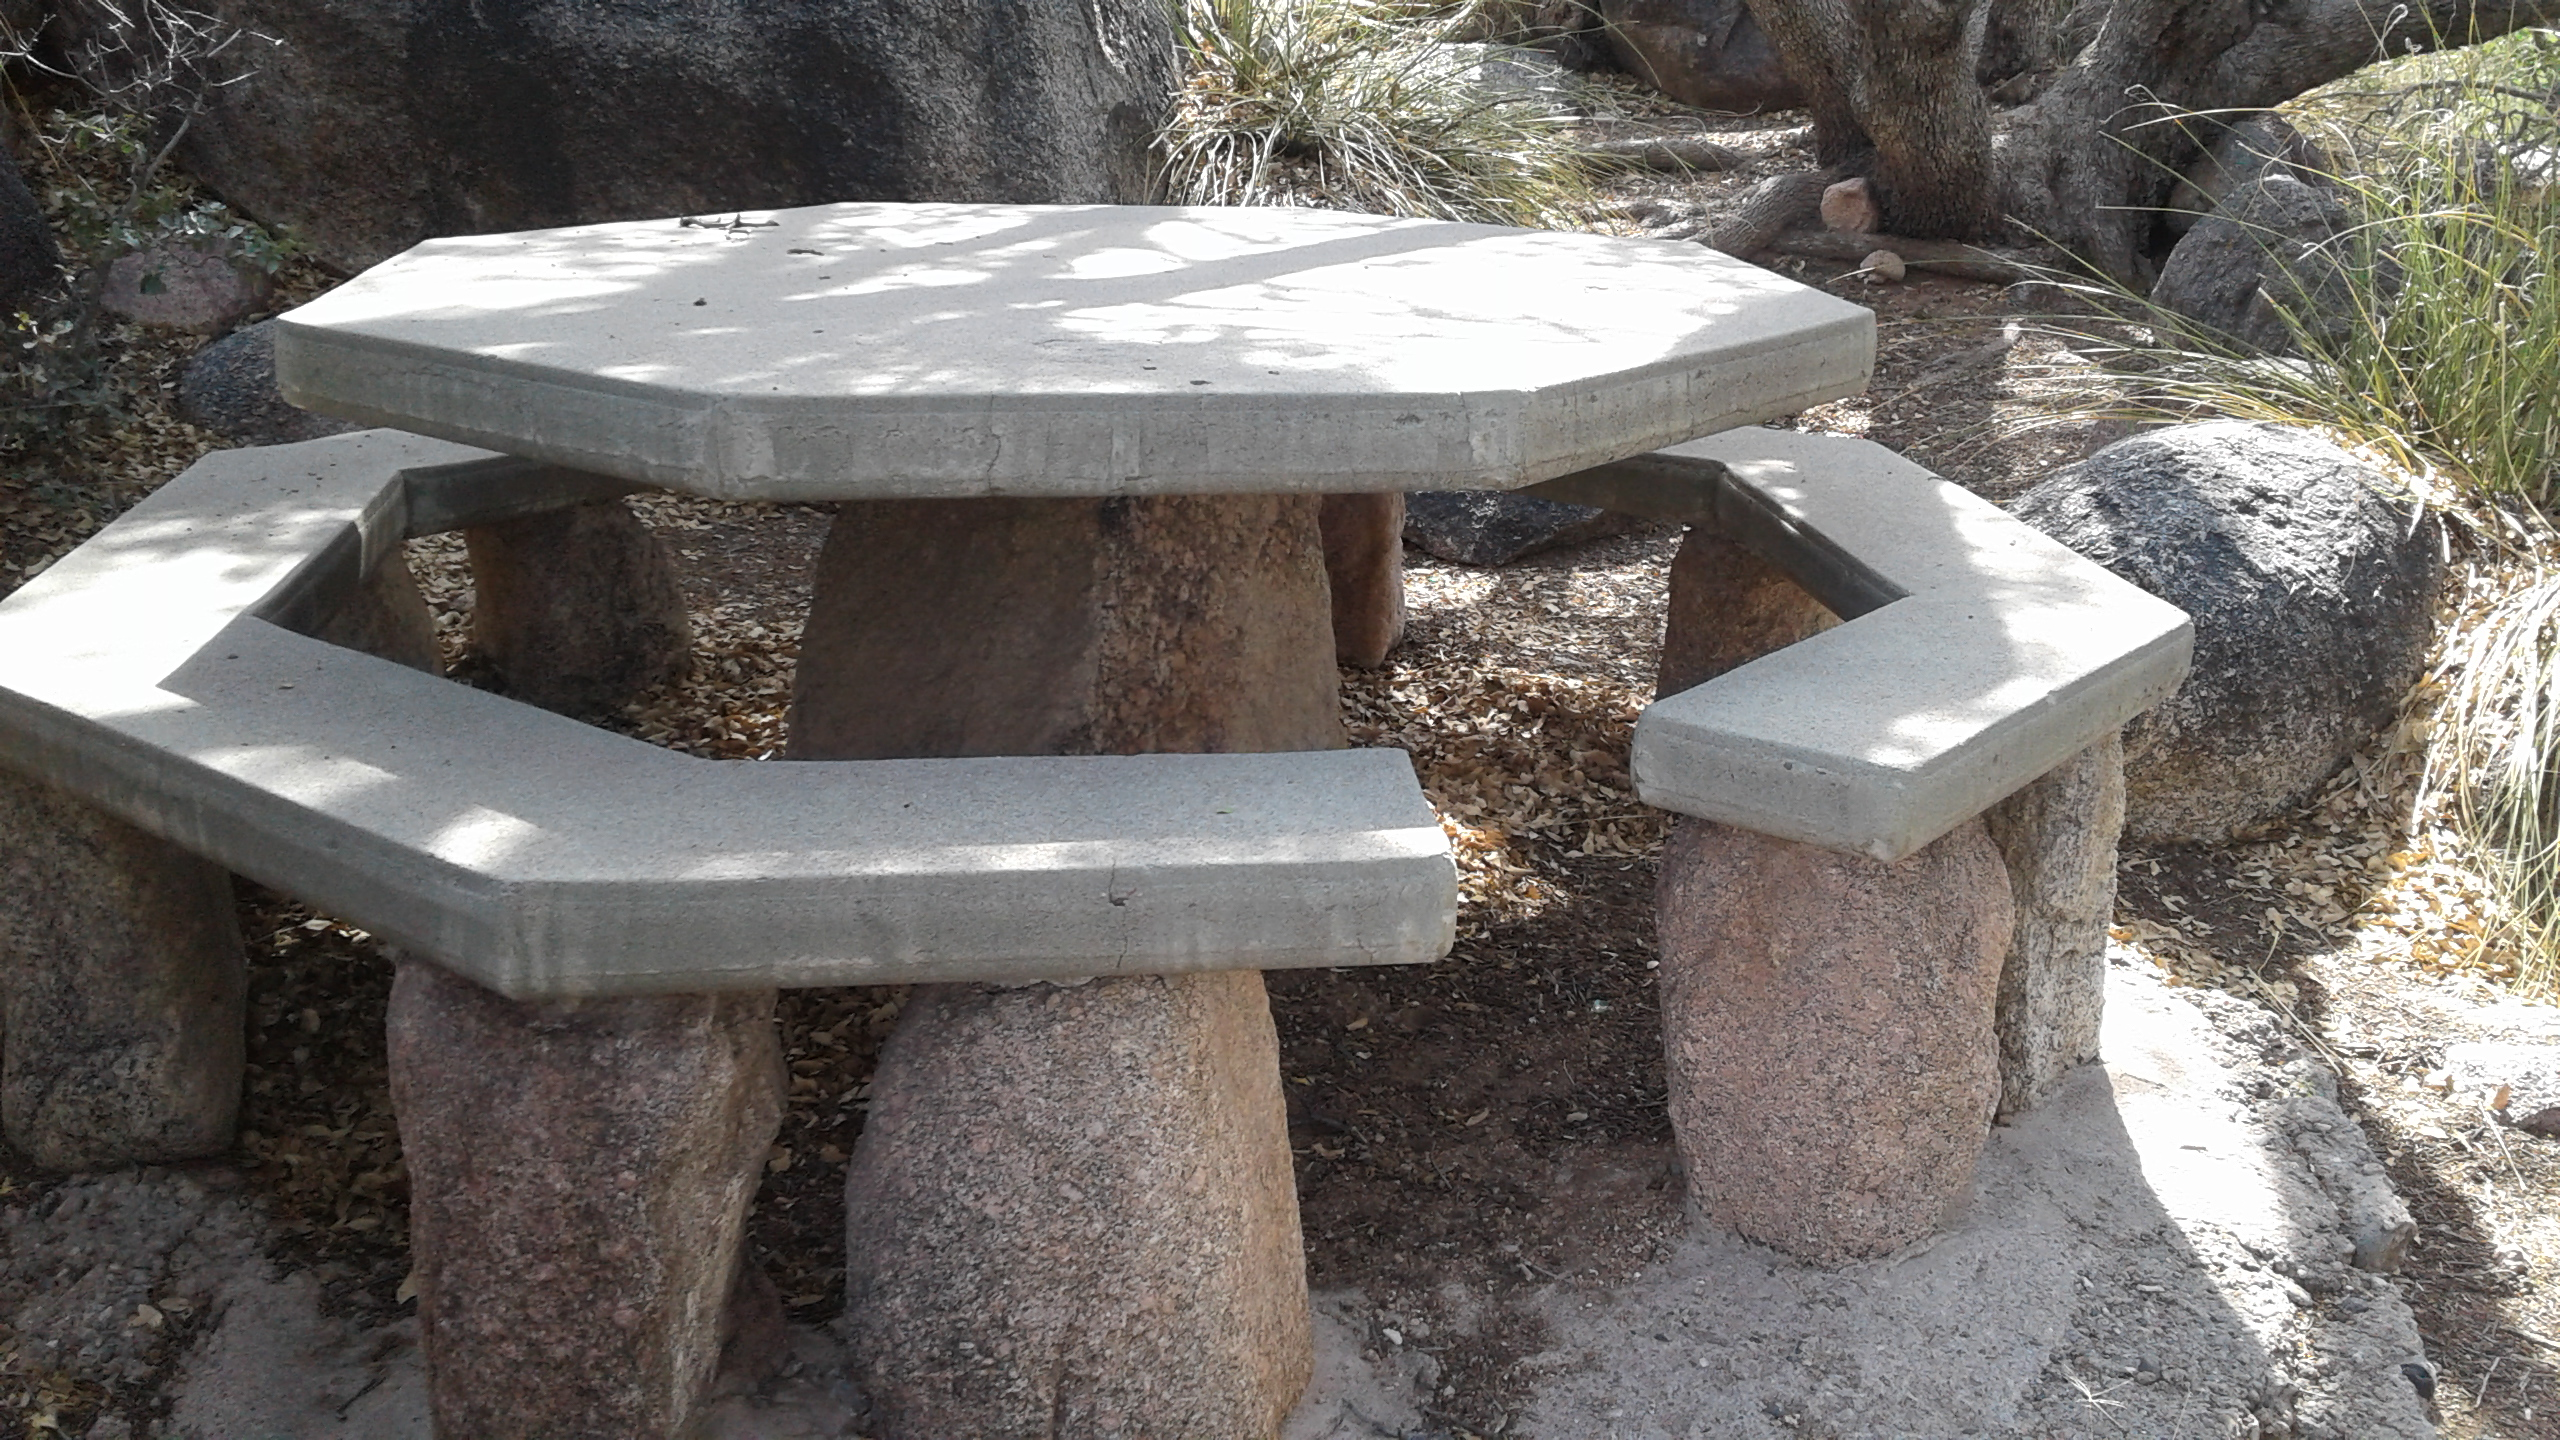 Photos Multimedia - 6 sided picnic table